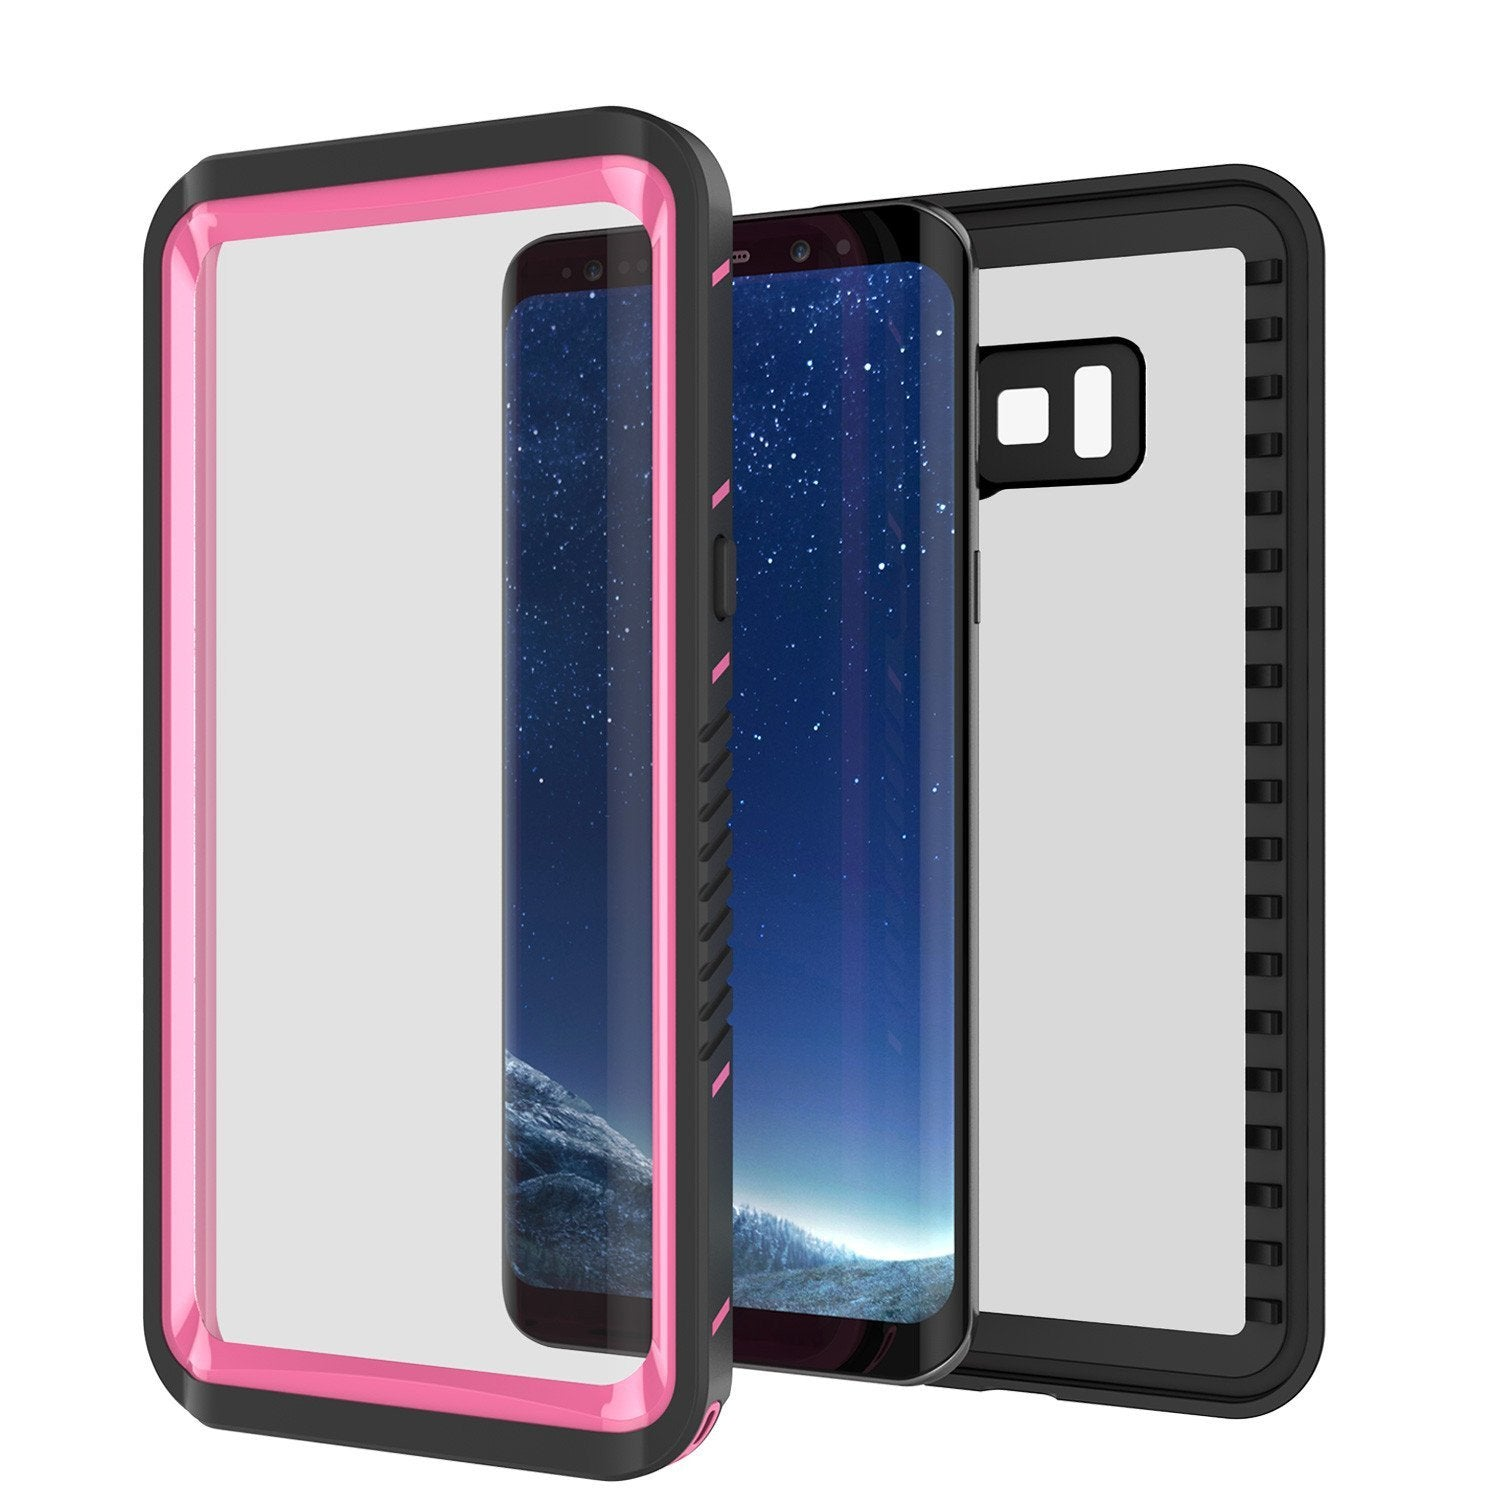 Galaxy S8 Case, Punkcase [Extreme Series] Armor Pink Cover